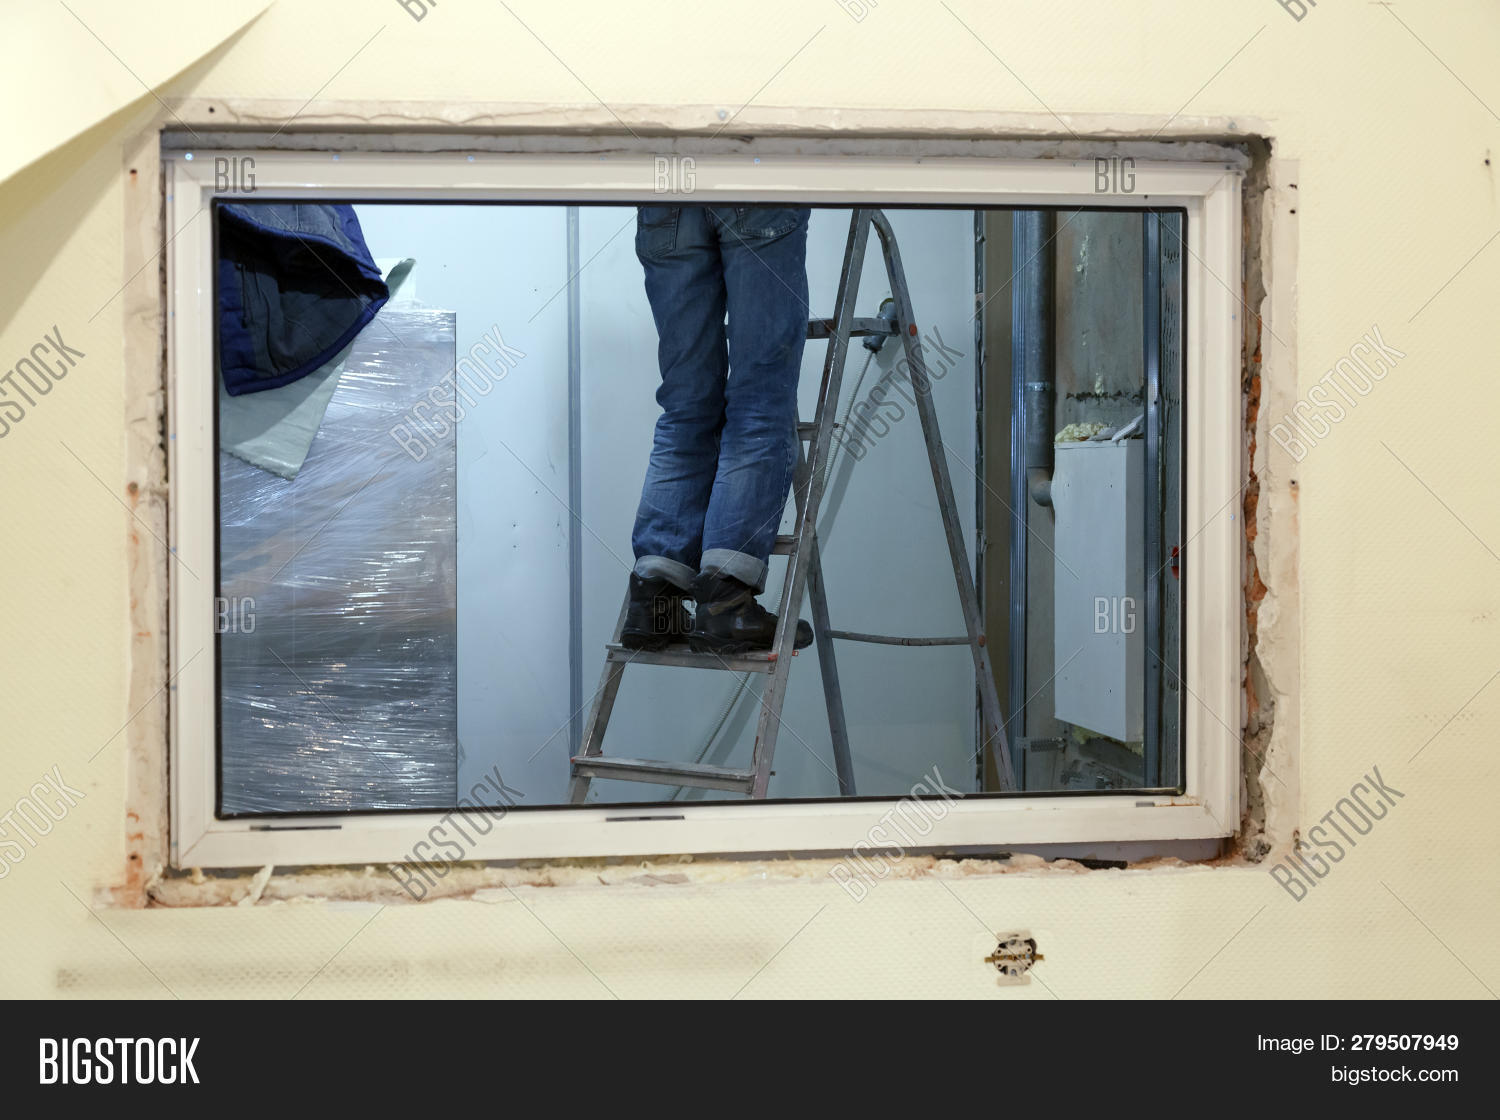 Worker Uniform Stands Image & Photo (Free Trial) | Bigstock